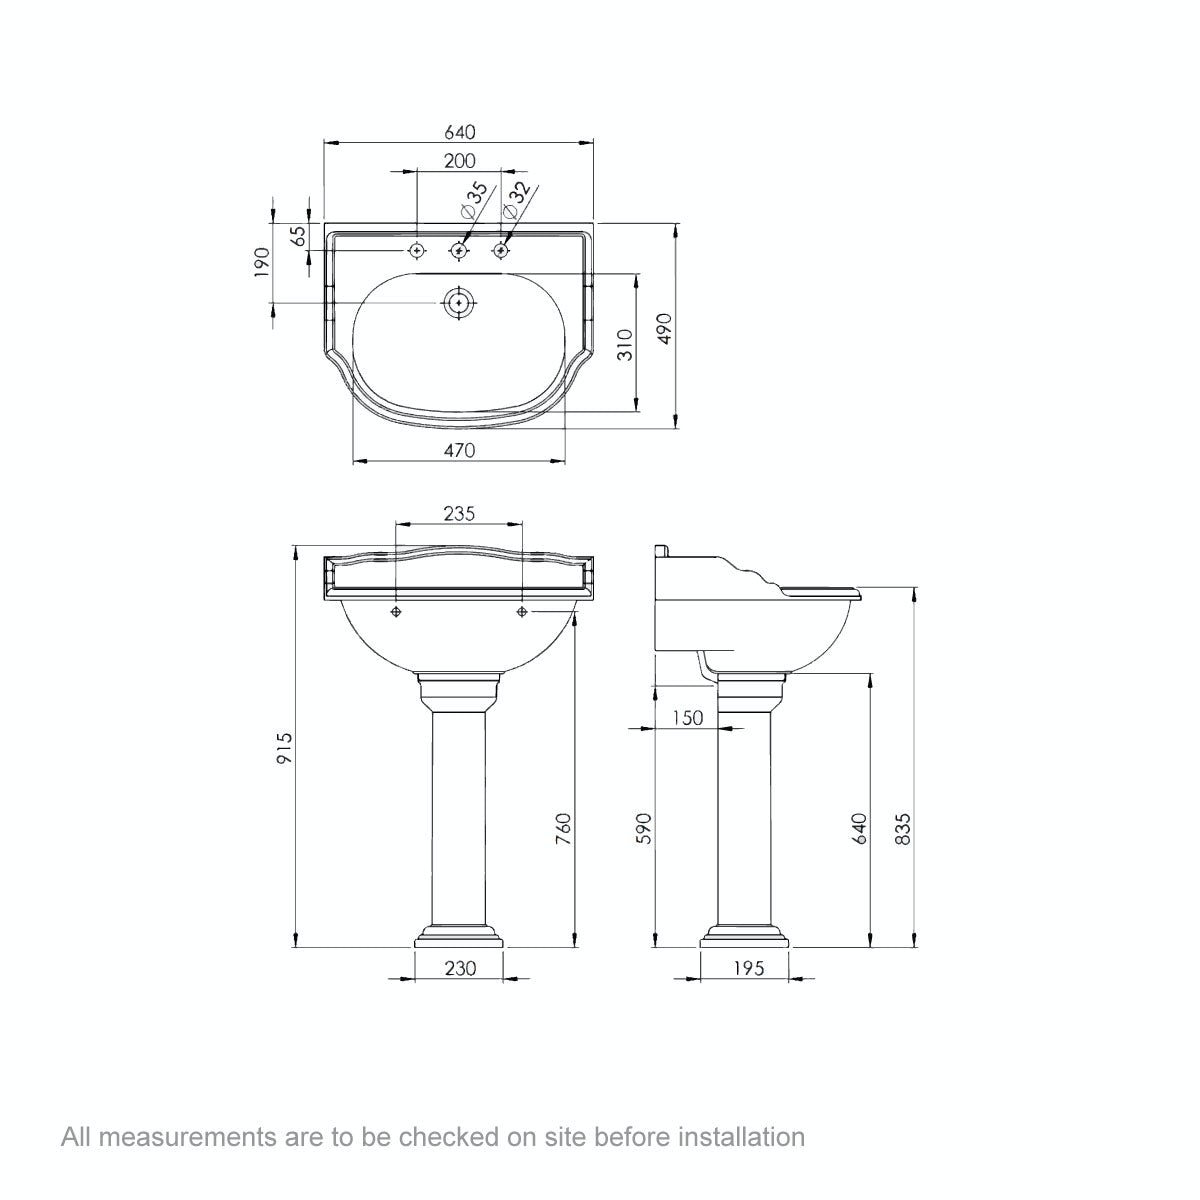 Dimensions for Belle de Louvain Charlet high level toilet and full pedestal suite with chrome fittings and taps